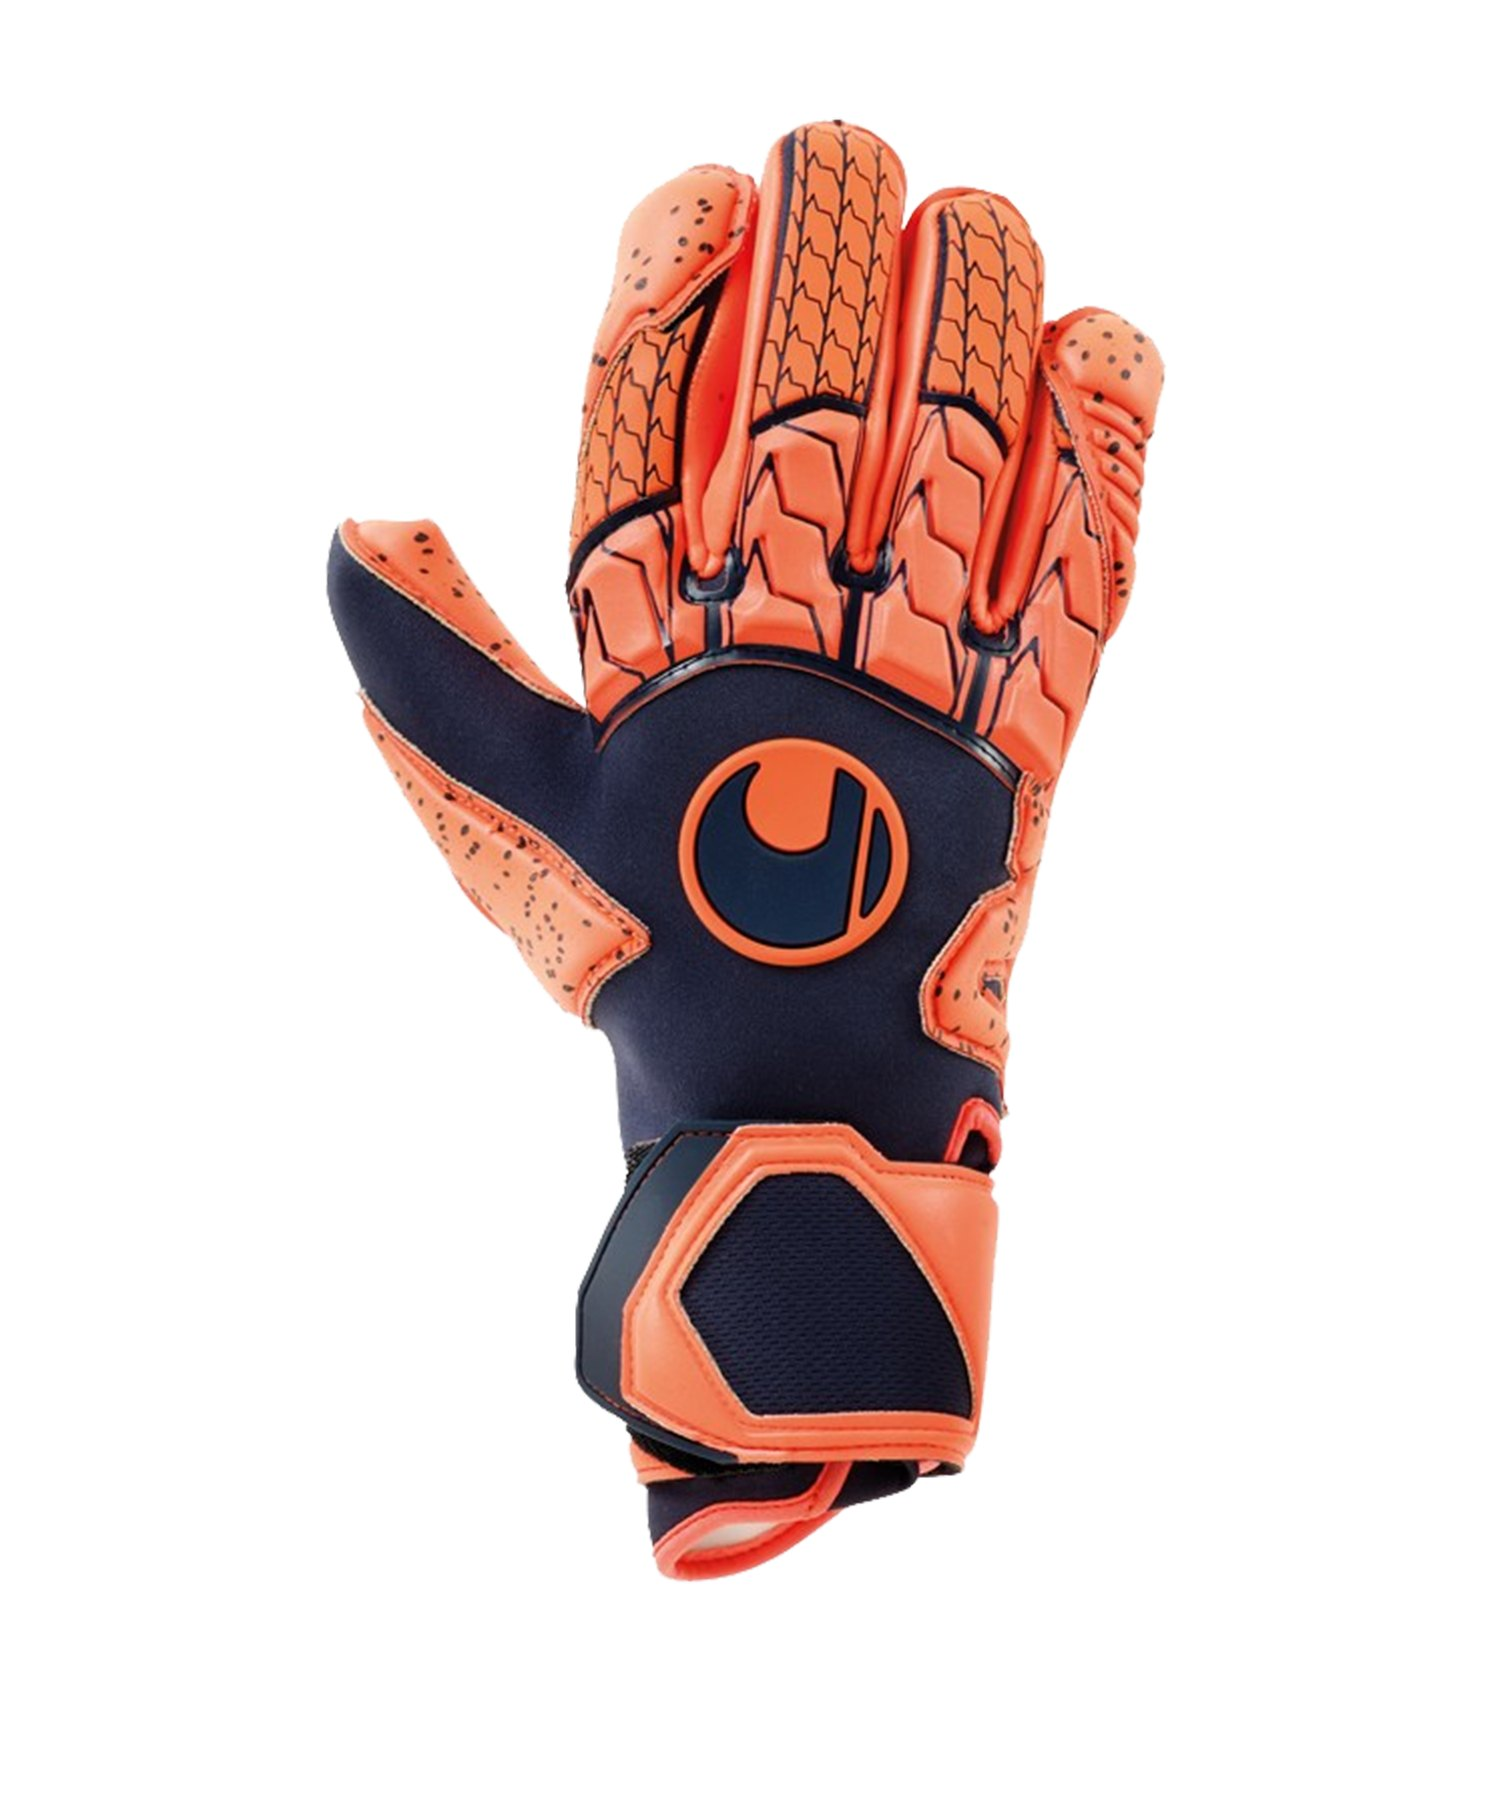 Uhlsport Next Level Supergrip TW-Handschuh Orange F01 - blau